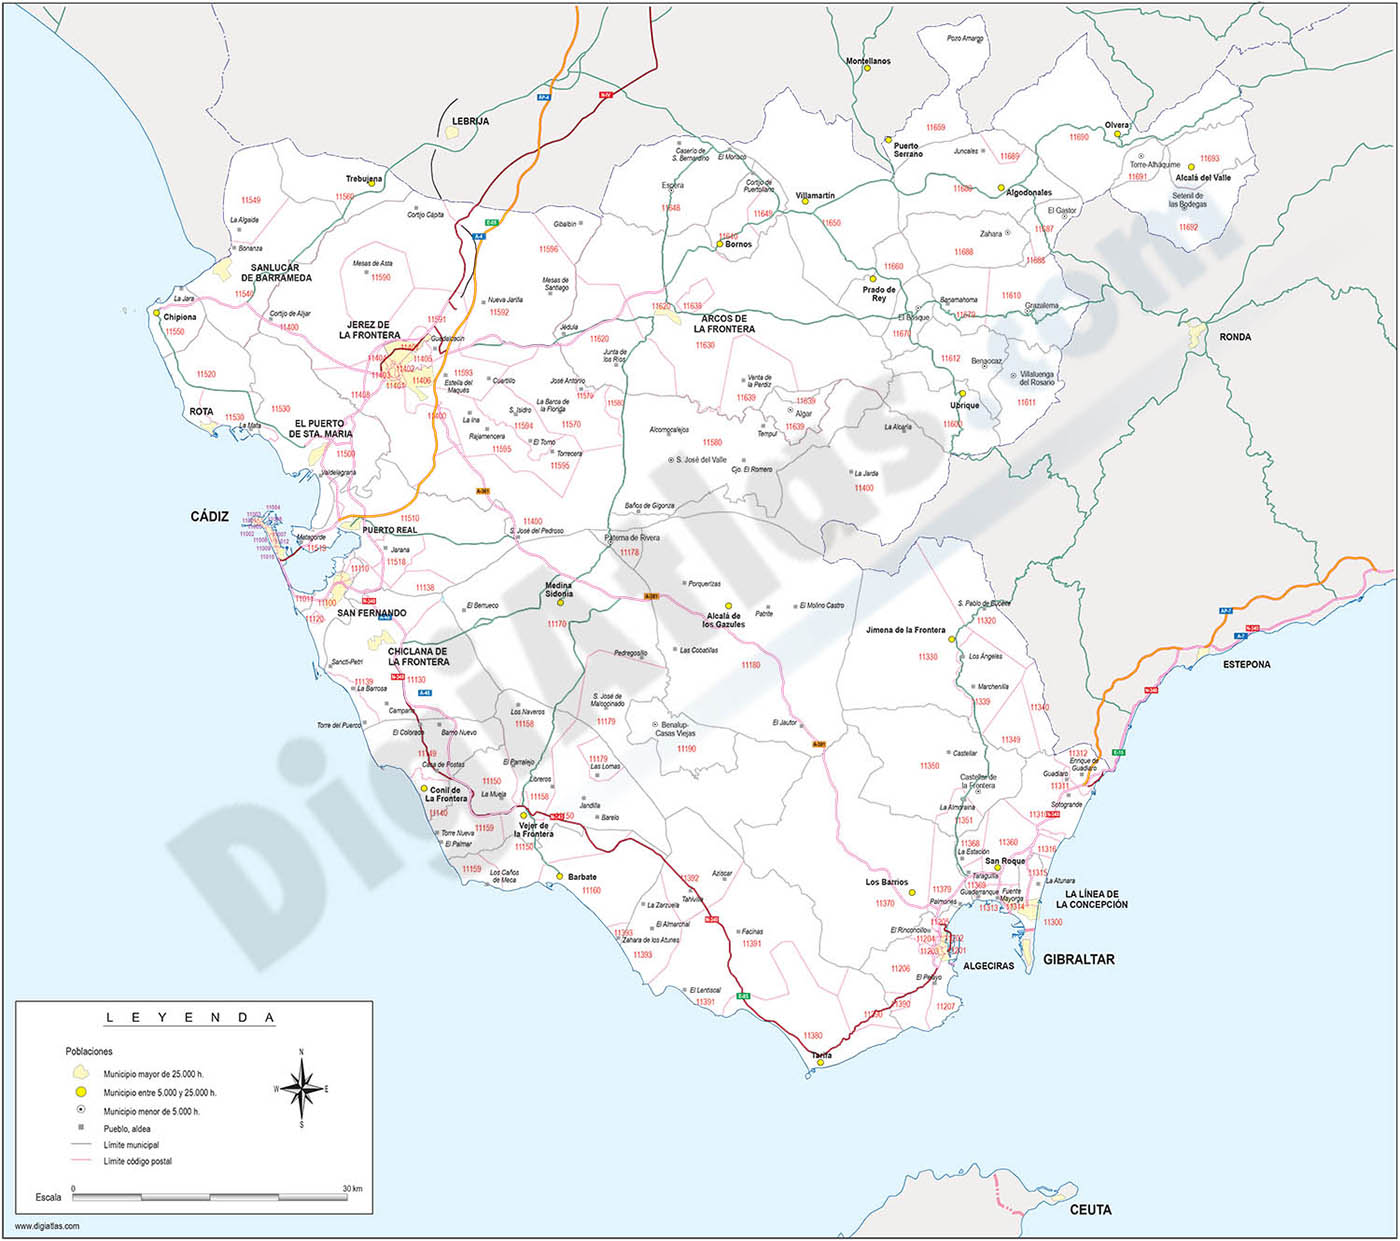 Map of Cadiz province with municipalities, postal codes and major roads